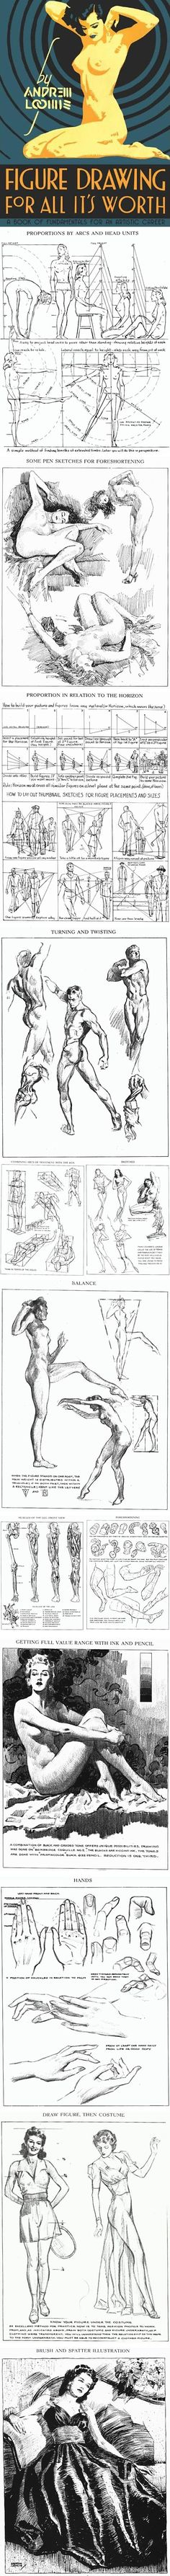 Lines and Colors: a blog about drawing, painting, illustration, comics, concept art and other visual arts » Figure Drawing for All it's Worth, Andrew Loomis